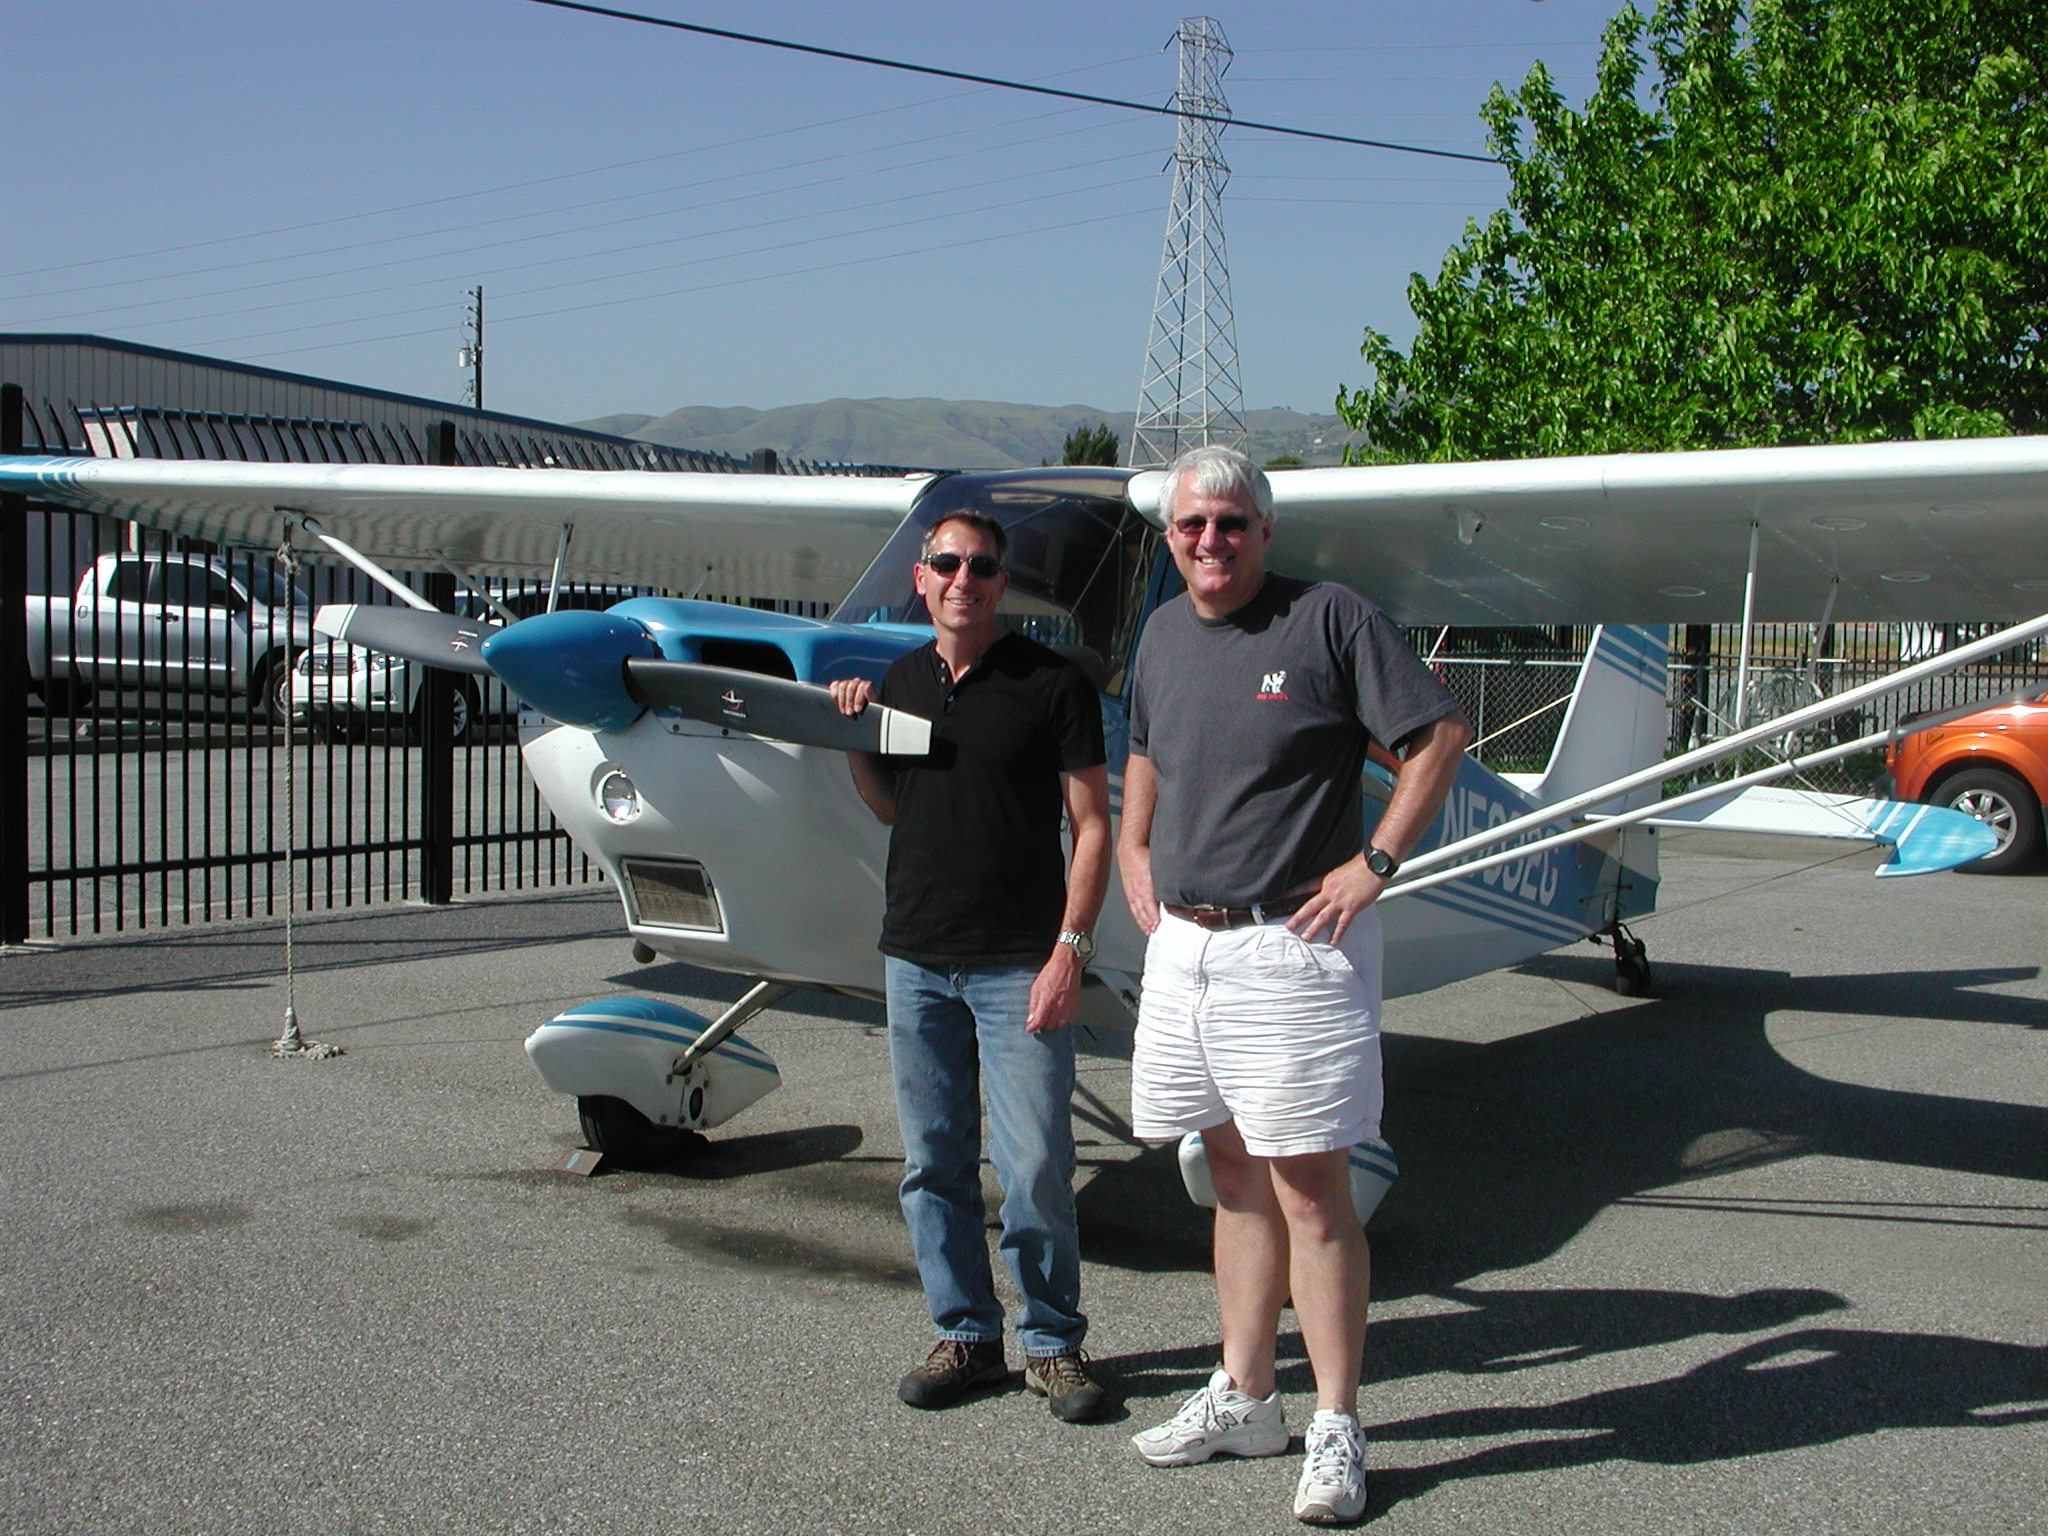 Chris Bennett started private pilot training at AeroDynamic Aviation located at Reid Hillview Airport in San Jose, CA.